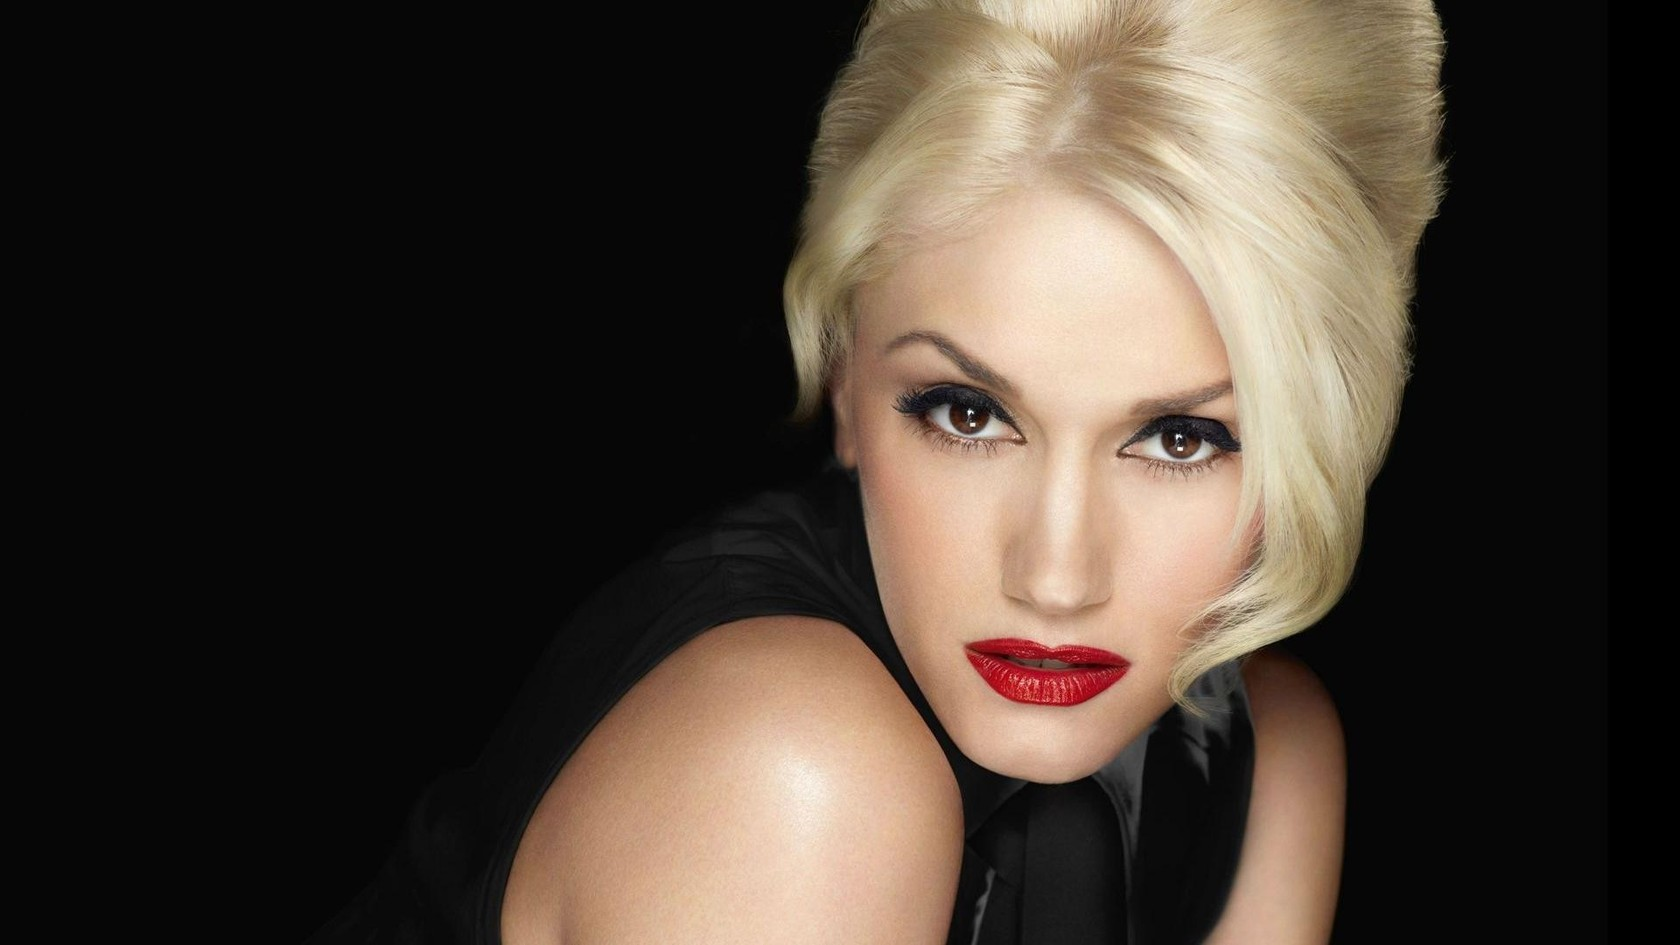 Gwen Stefani pretty wallpaper hd Wallpaper Wallpaper